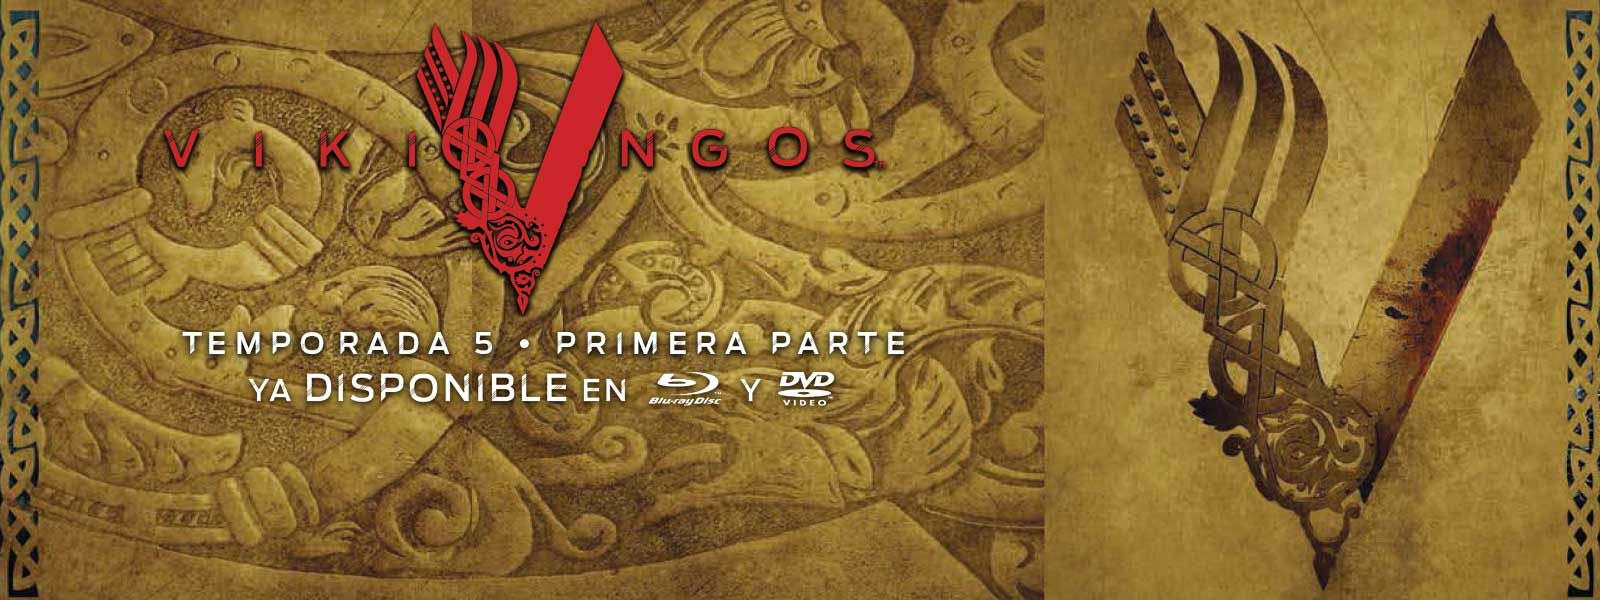 Vikingos Temporada 5, Volumen 1. Ya disponible en Blu-ray y DVD